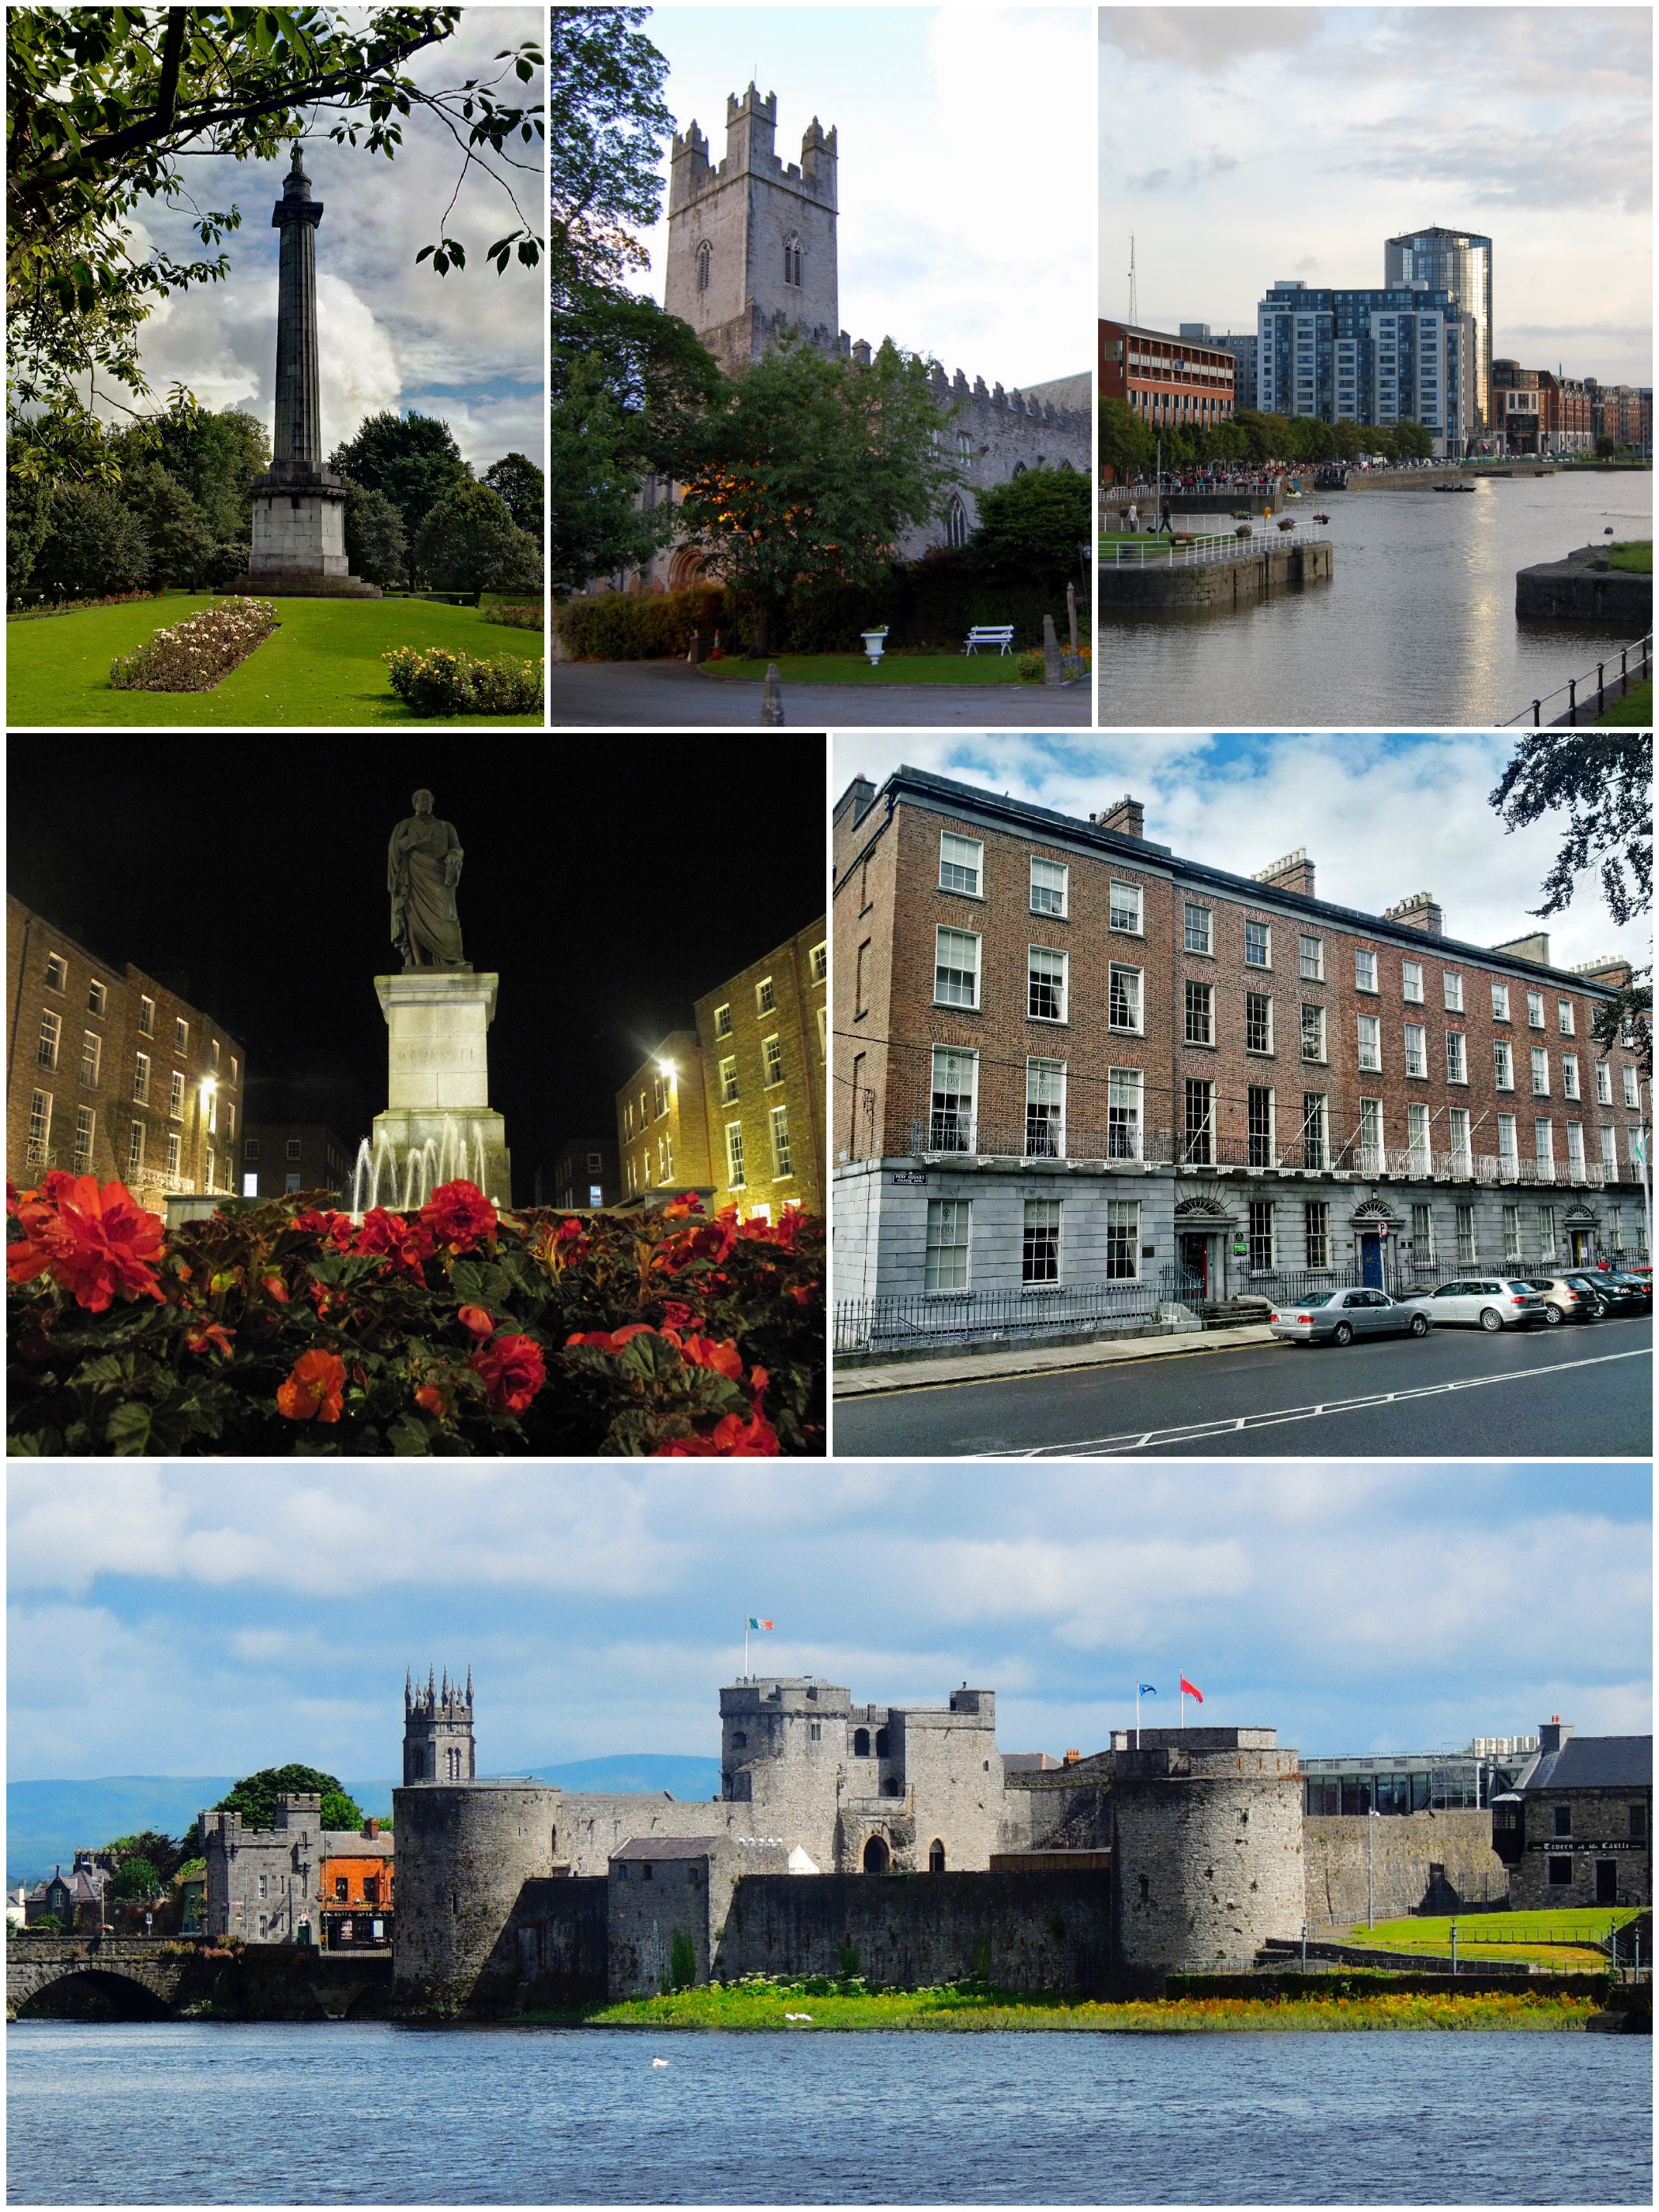 Carrick-on-shannon, Ireland Tours | Eventbrite